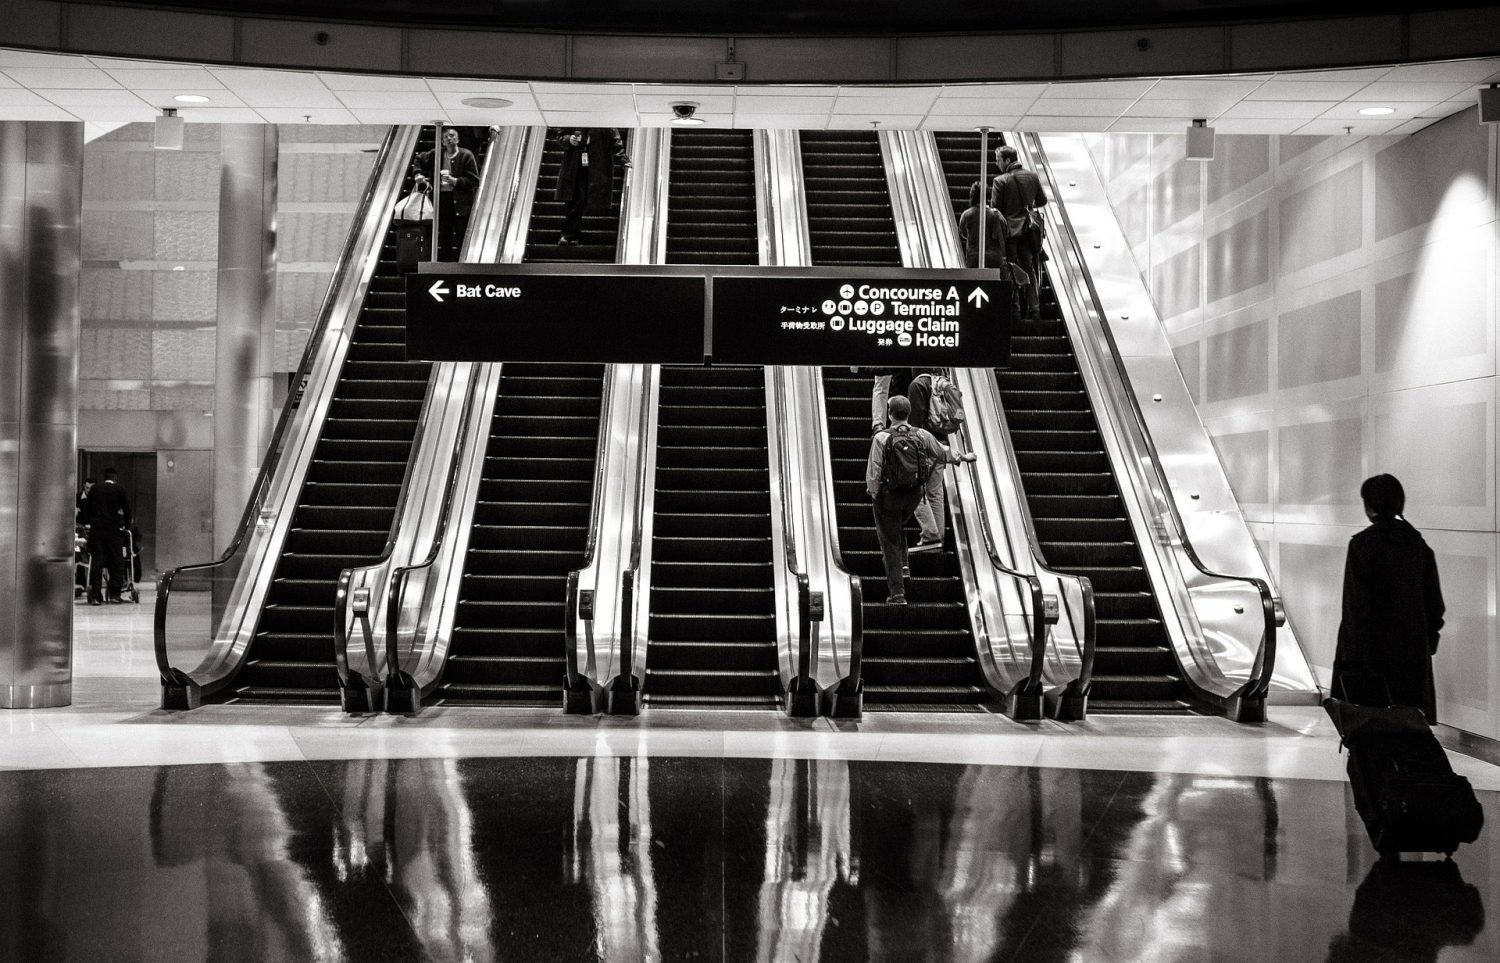 escalators-594463_1920